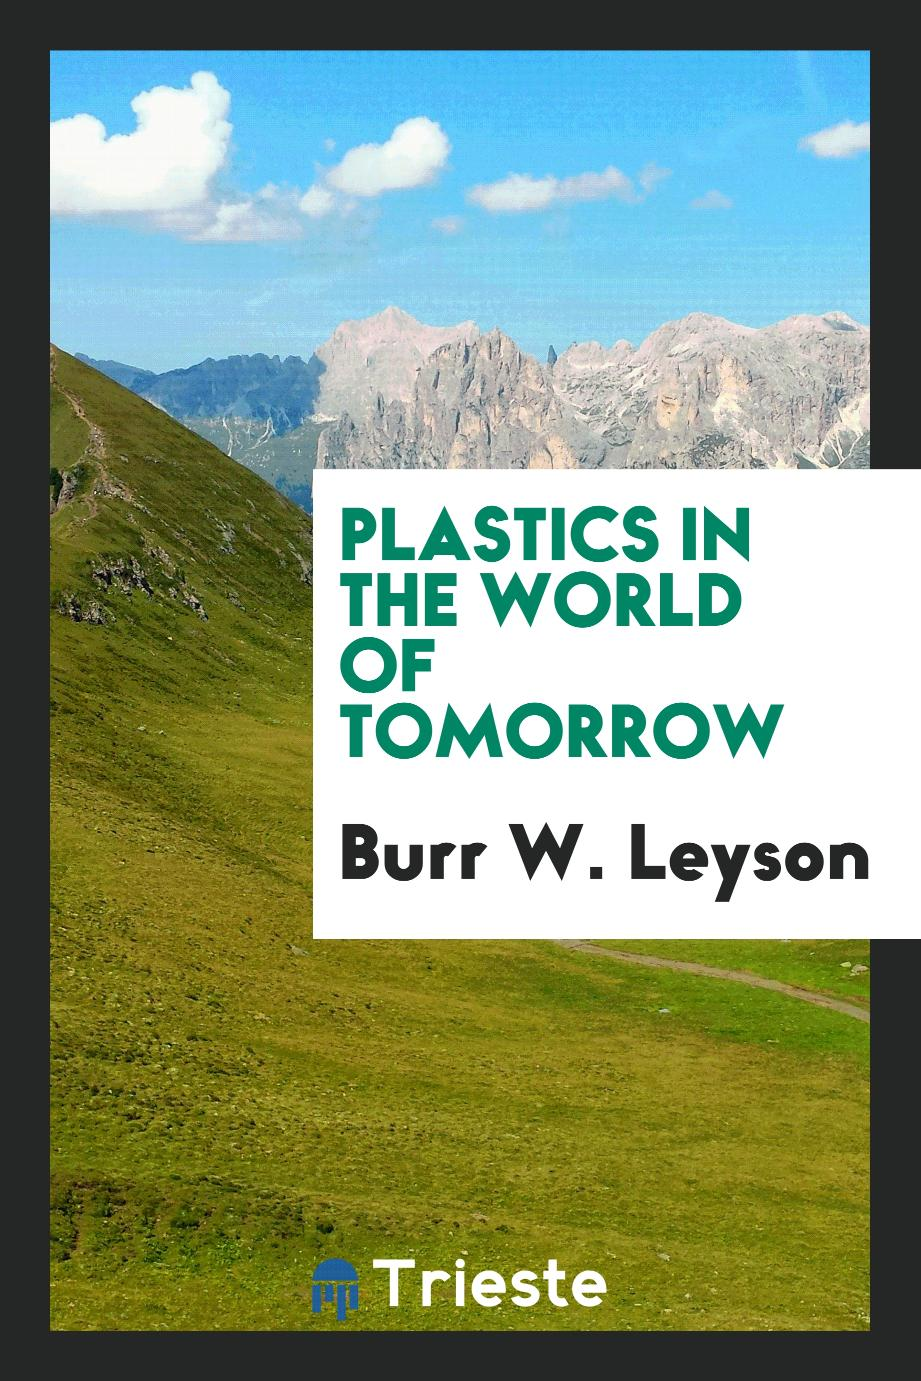 Plastics in the world of tomorrow